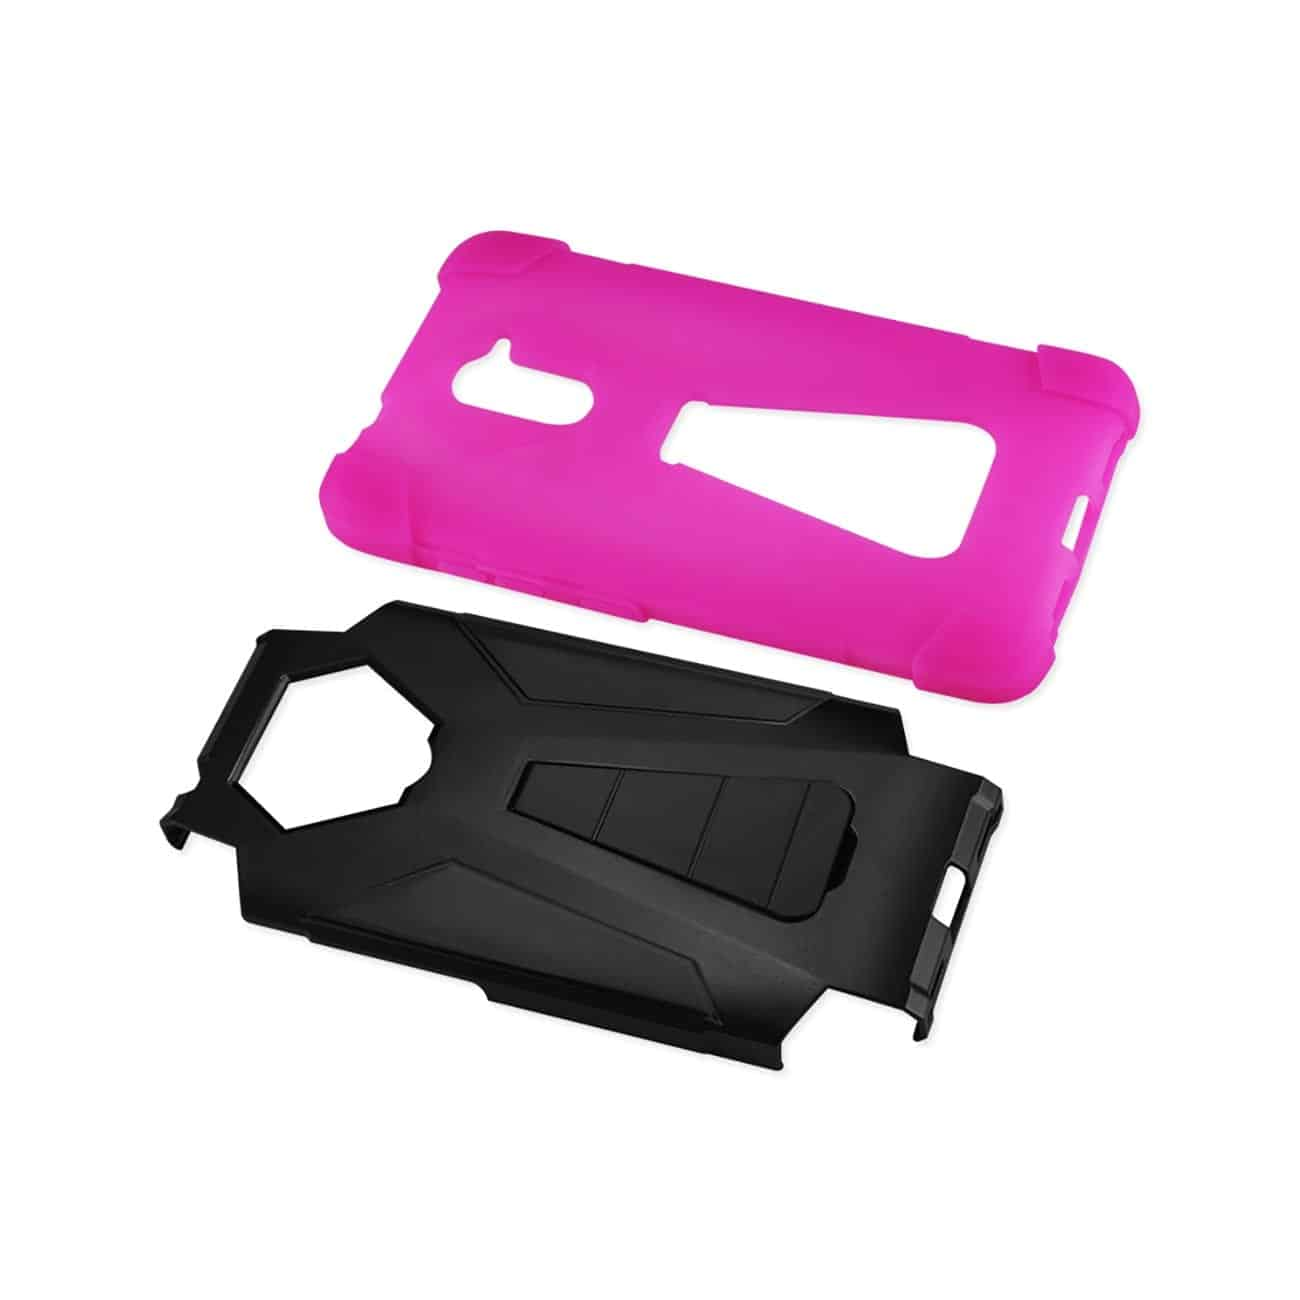 ZTE GRAND X MAX 2 HYBRID HEAVY DUTY CASE WITH KICKSTAND IN HOT PINK BLACK